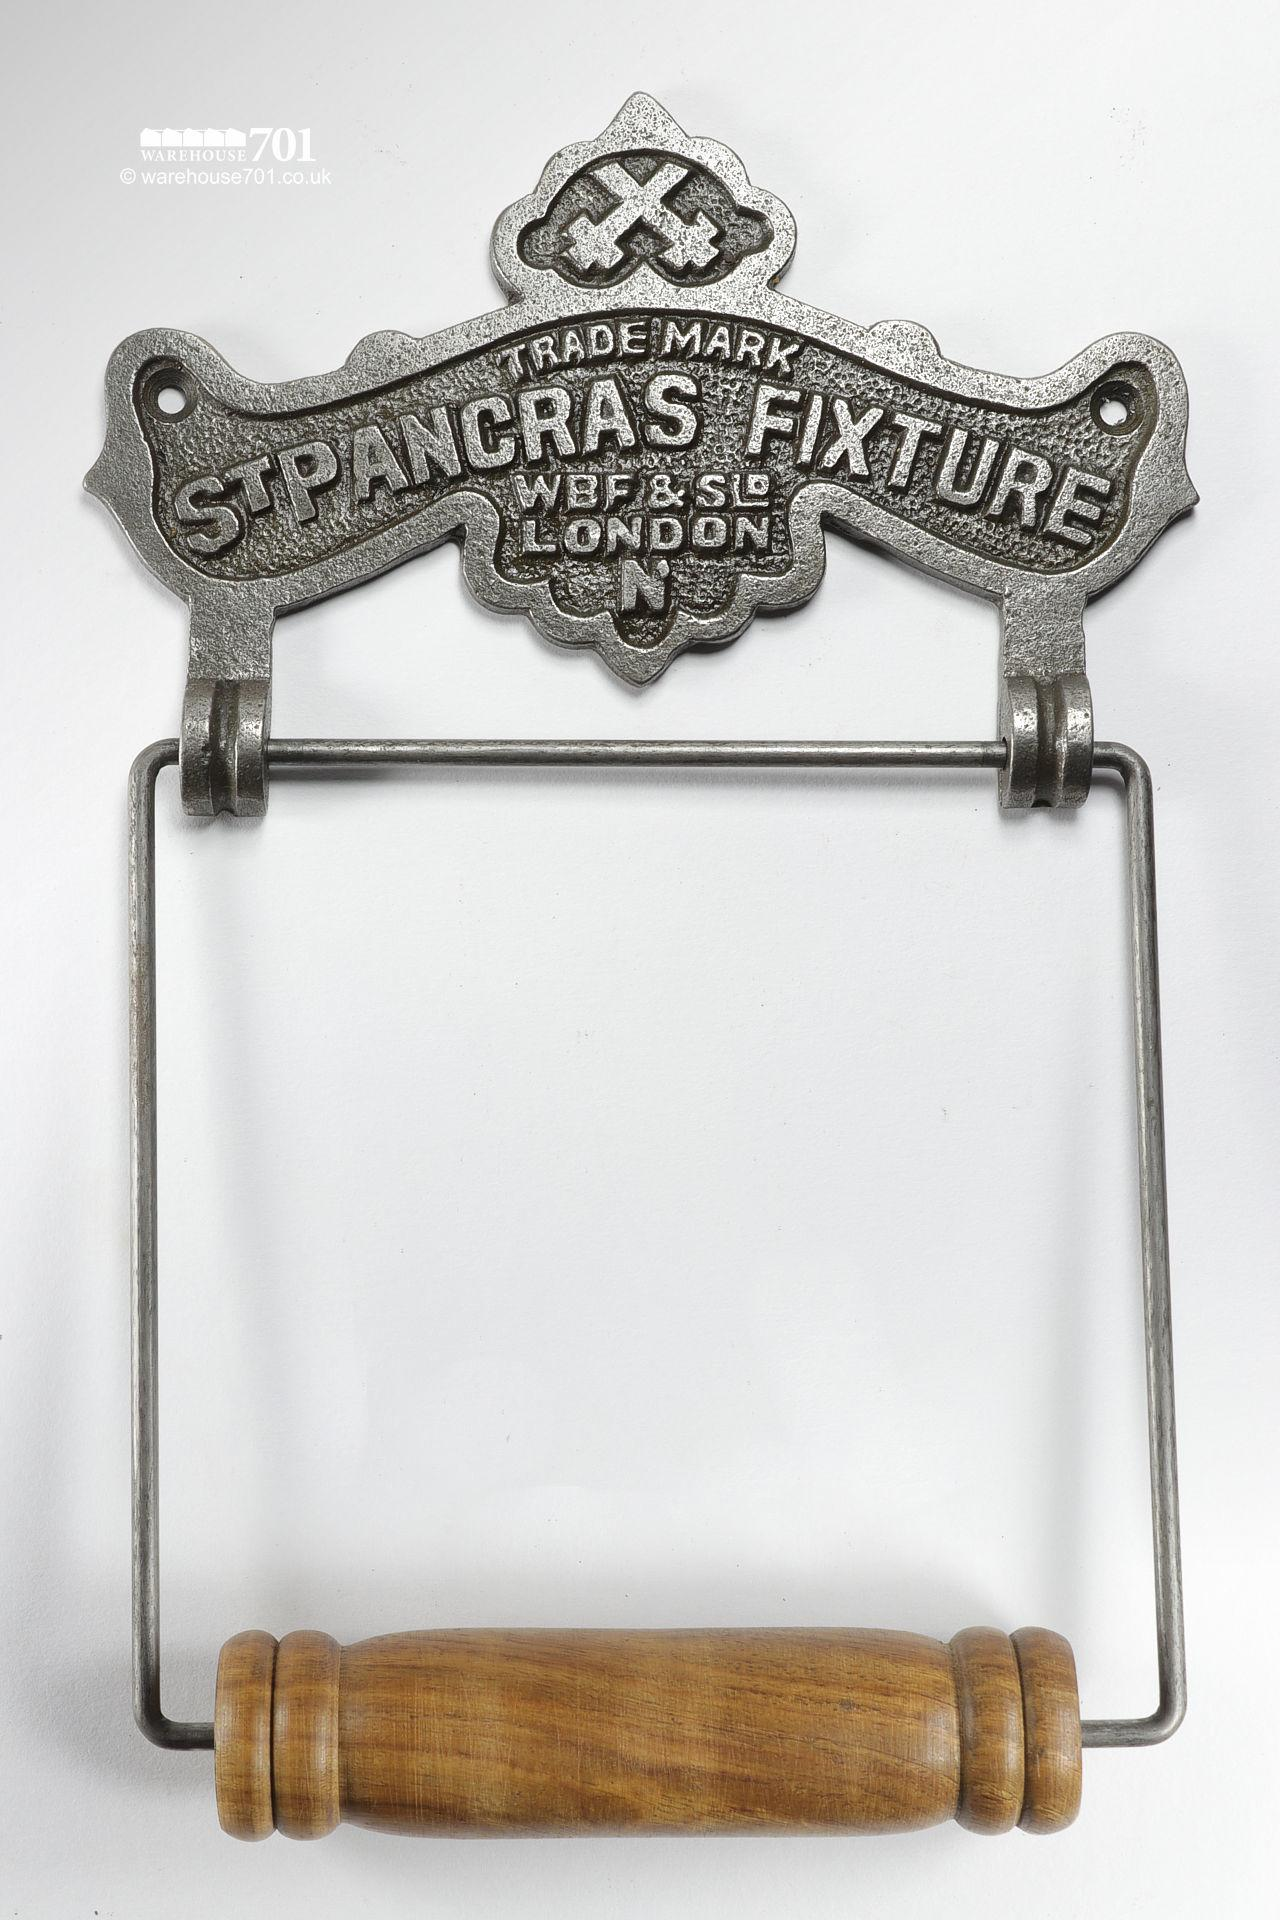 New Vintage Style Toilet Roll Holder - St Pancras Fixture